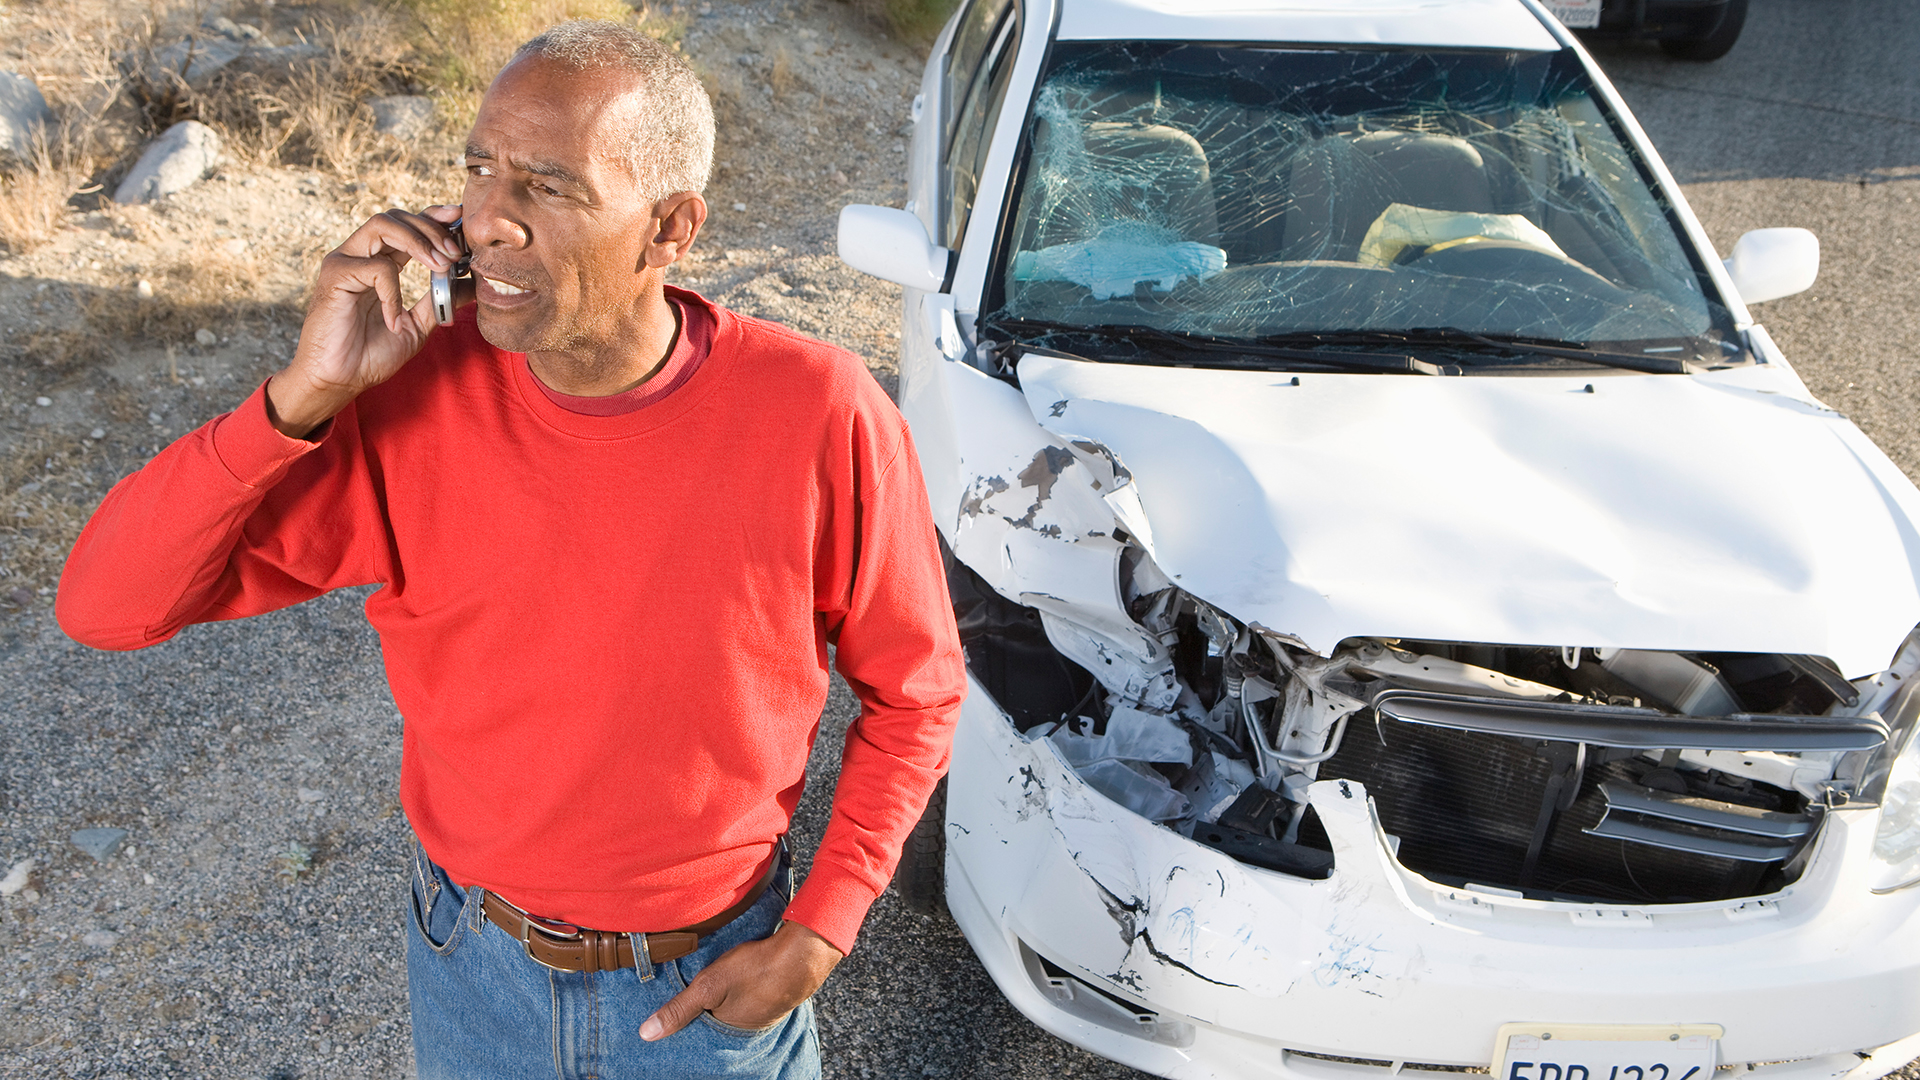 court summons for driving without insurance